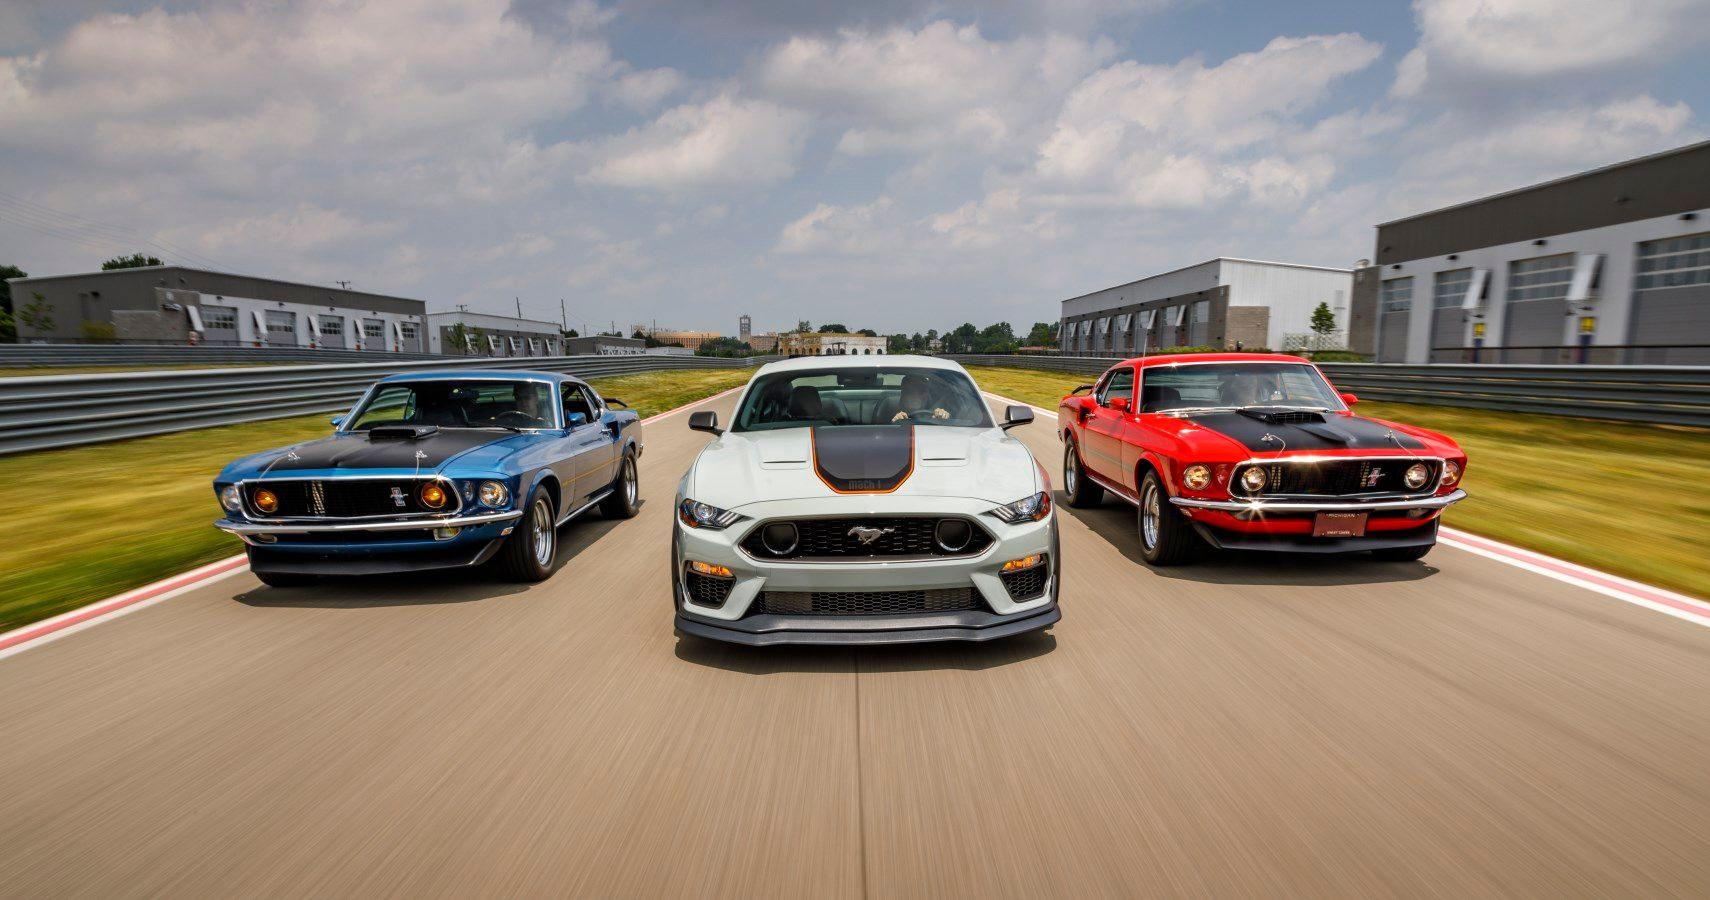 The Average Mustang Buyer Is Getting Older: Here's What May Be Going On